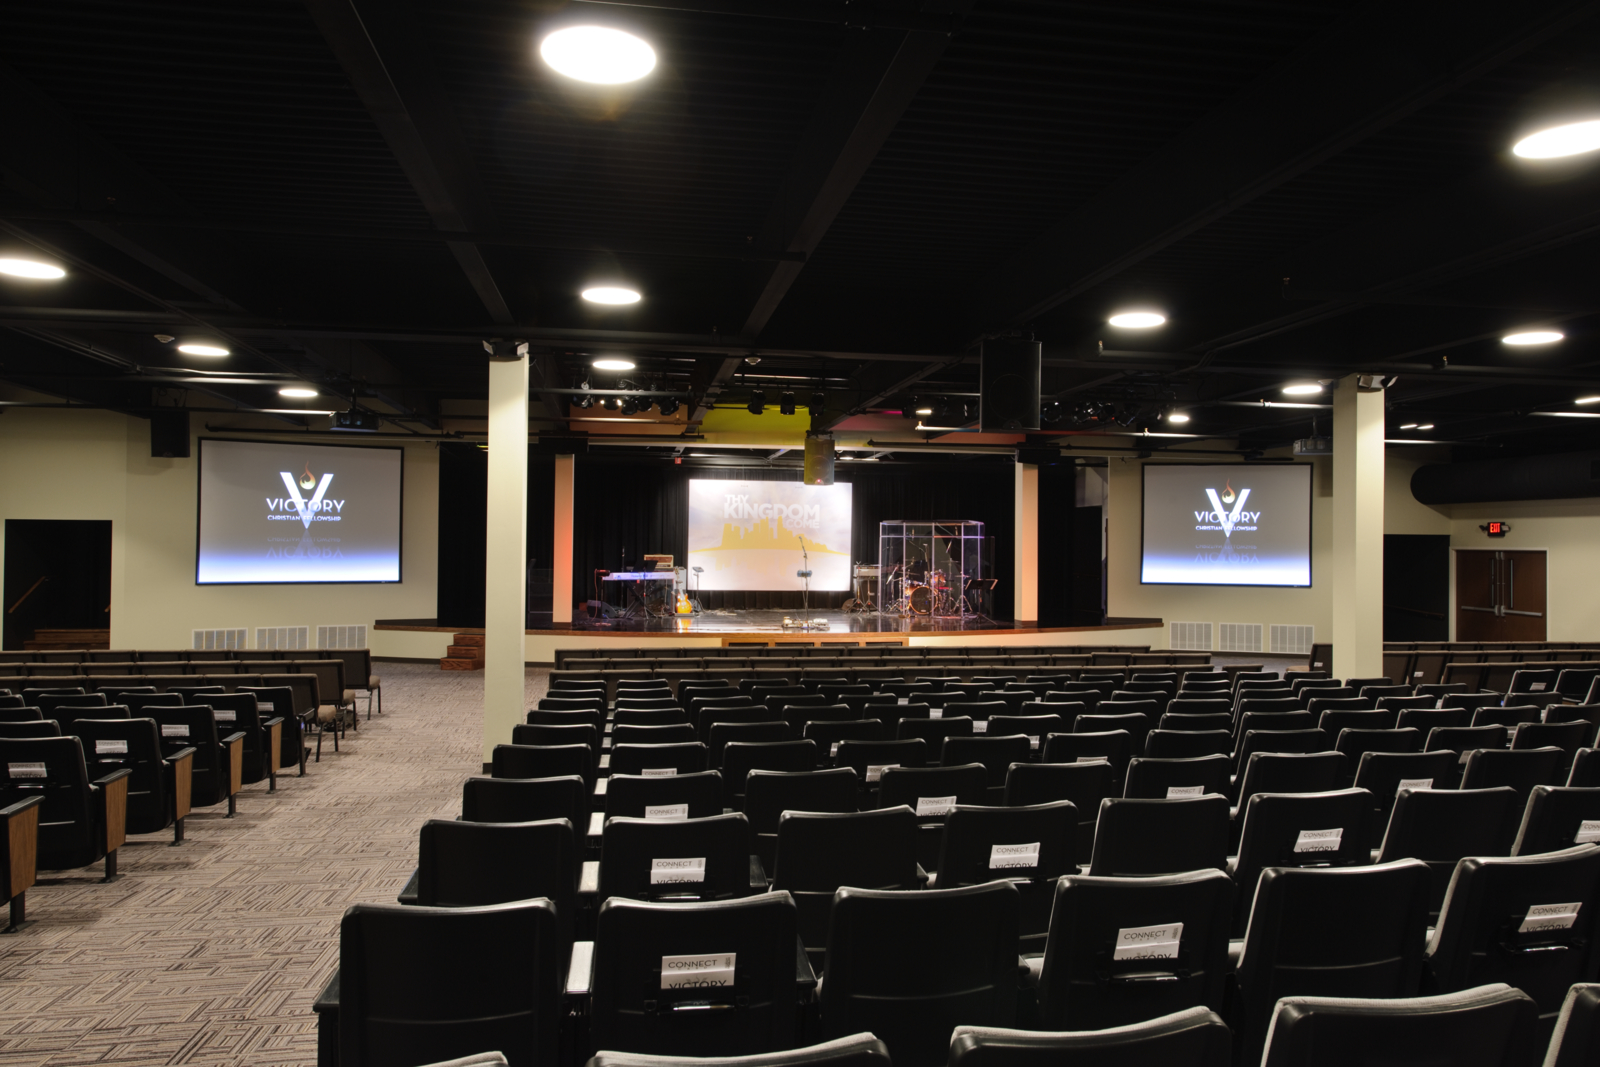 An adaptive reuse of a vacant computer service office building, portions of the raised floor system were removed to create a sloped-floor auditorium to seat 500 forvictory fellowship / 422 church in audubon, PA